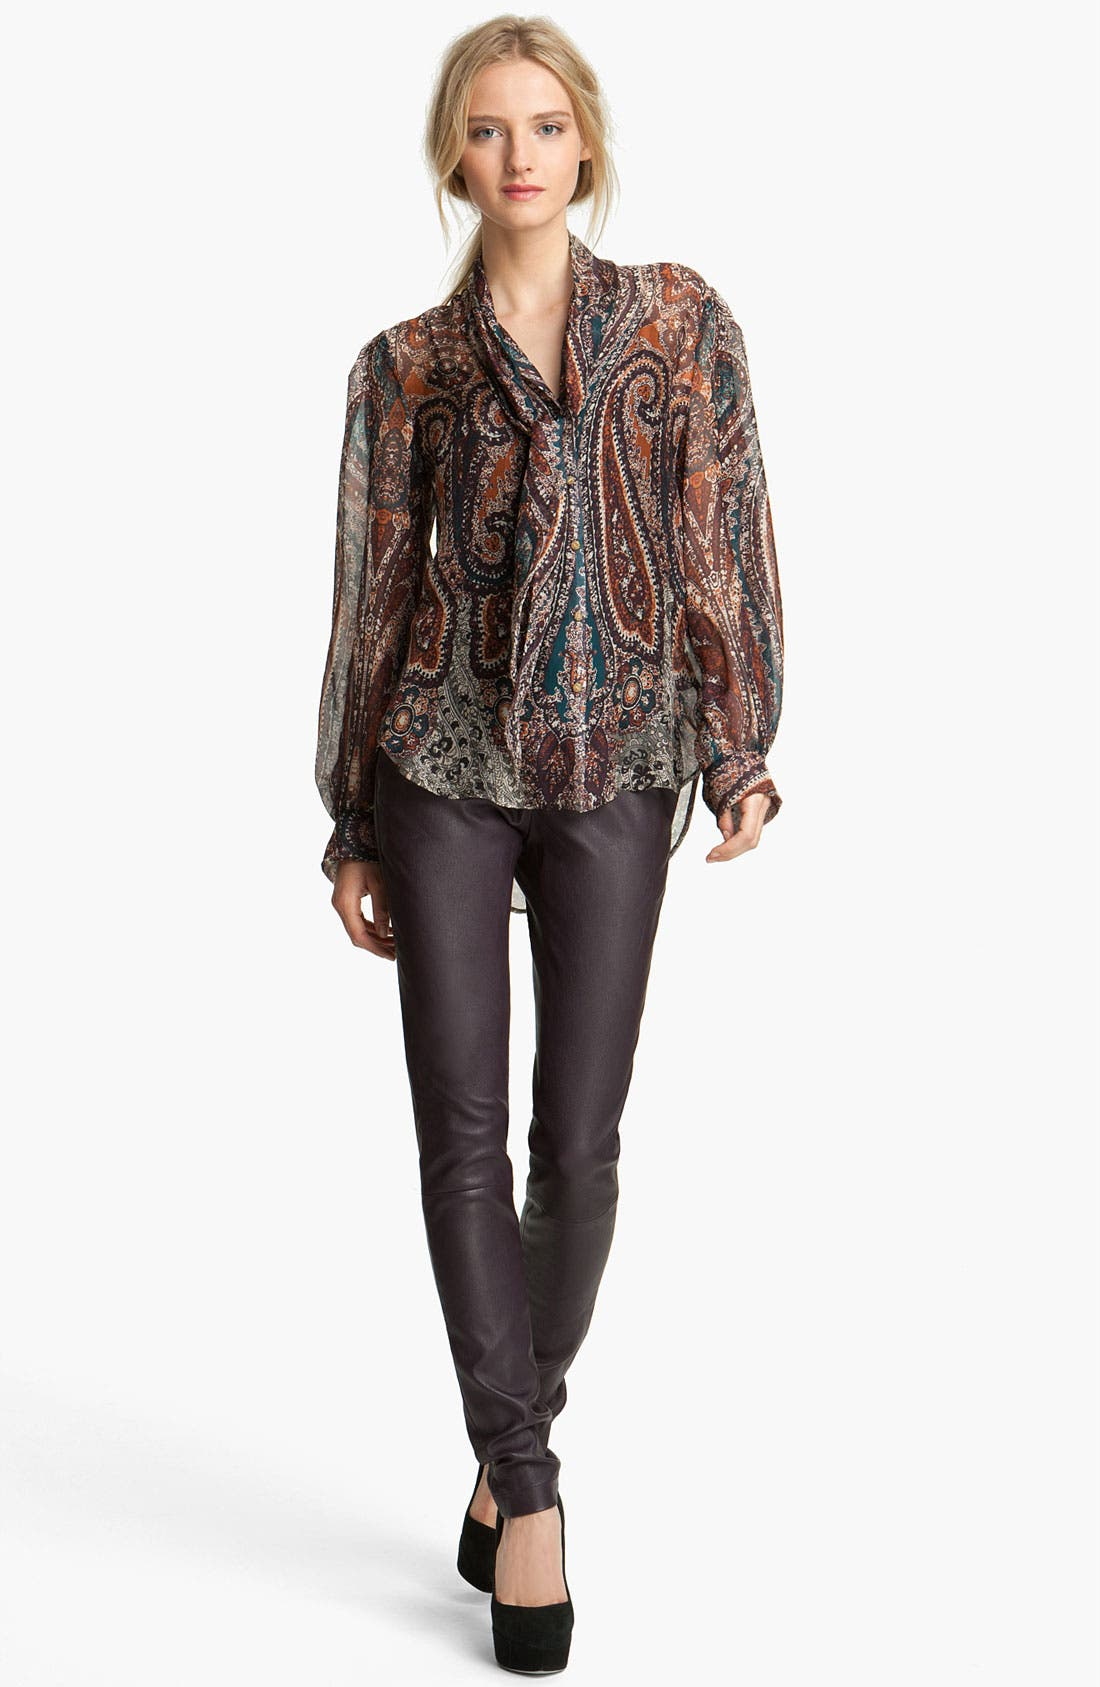 Alternate Image 1 Selected - L'AGENCE Print Tie Neck Blouse